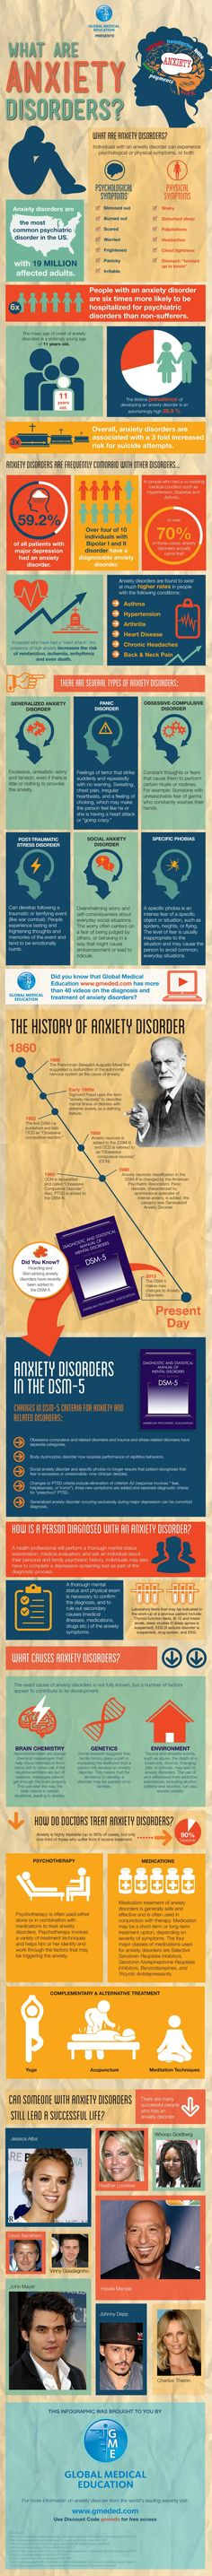 Facts and Myths about anxiety disorders.